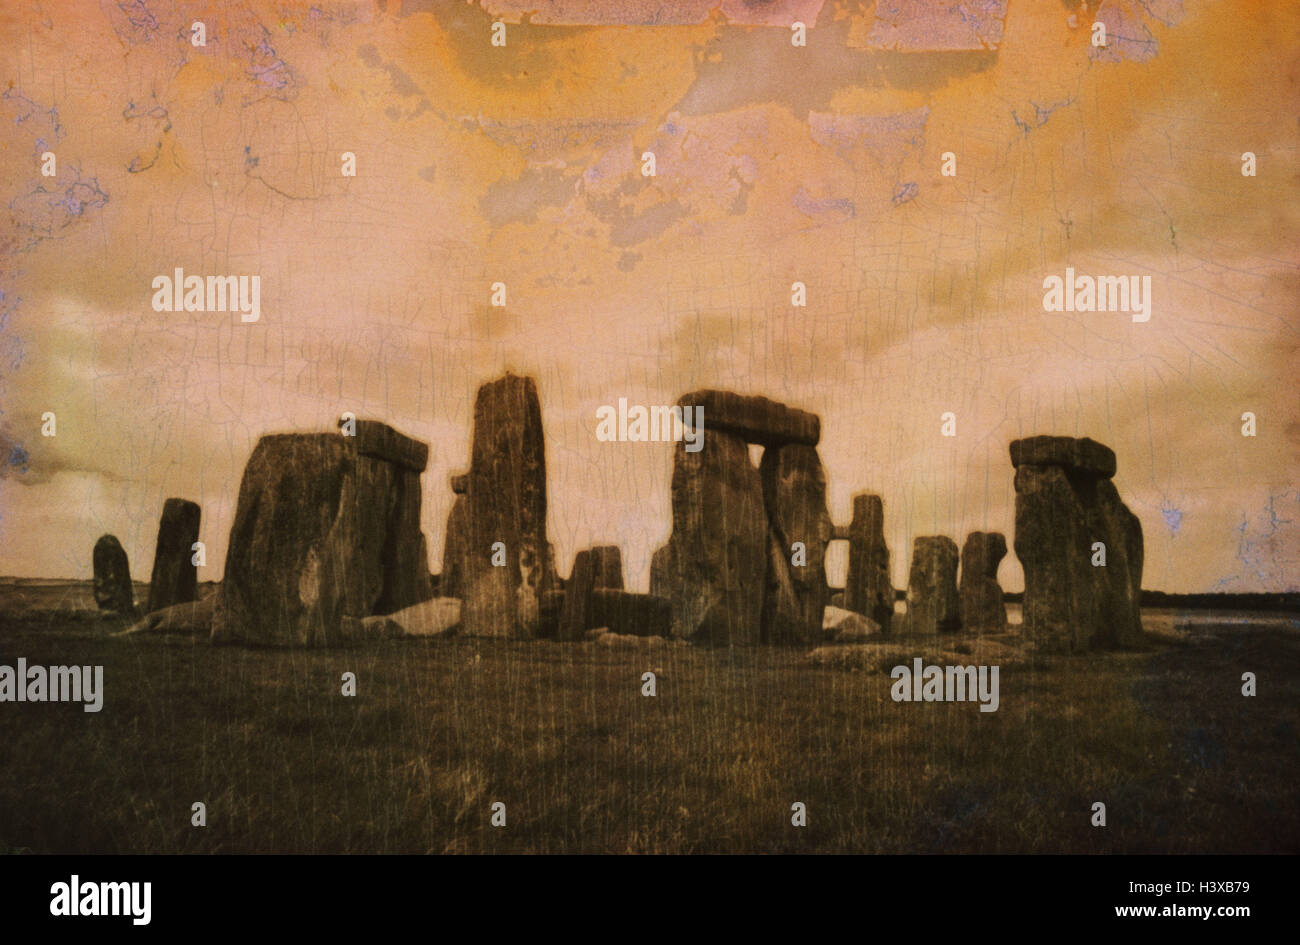 Great Britain, south narrow country, Wiltshire, Stonehenge, manipulated, close Salisbury, stone circles, stone circles, - Stock Image